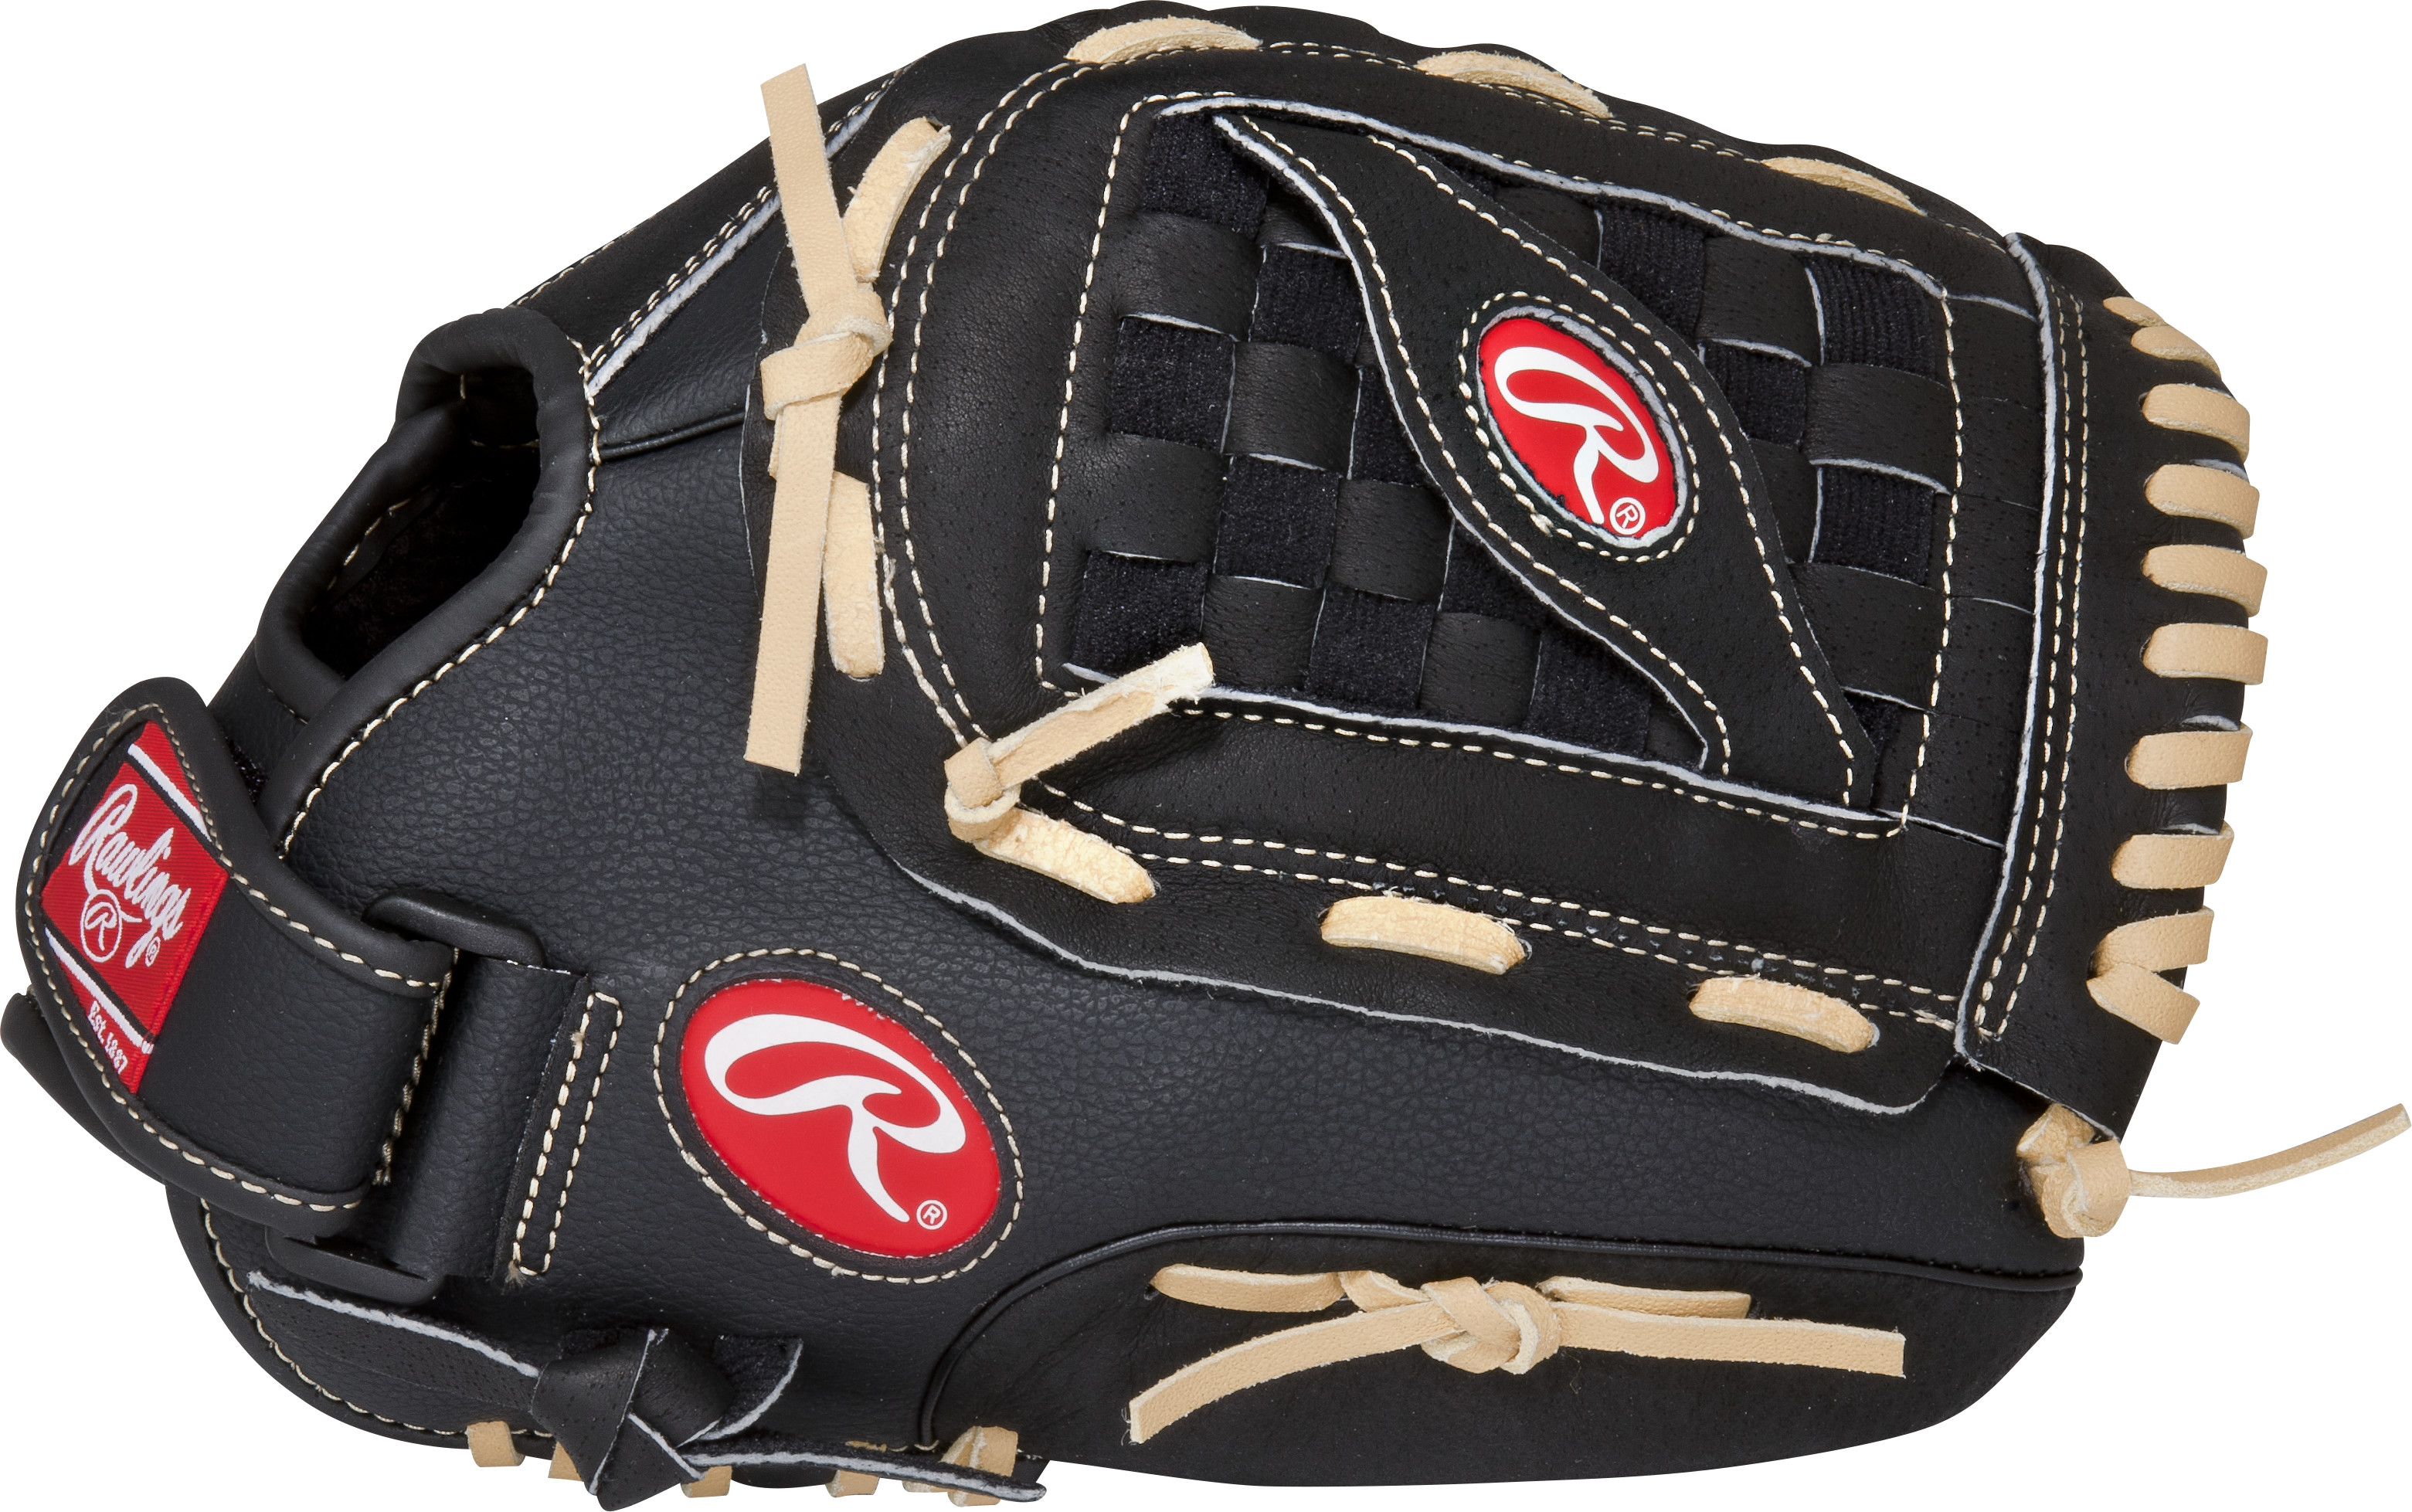 http://www.bestbatdeals.com/images/gloves/rawlings/RSS125C_thumb.jpg